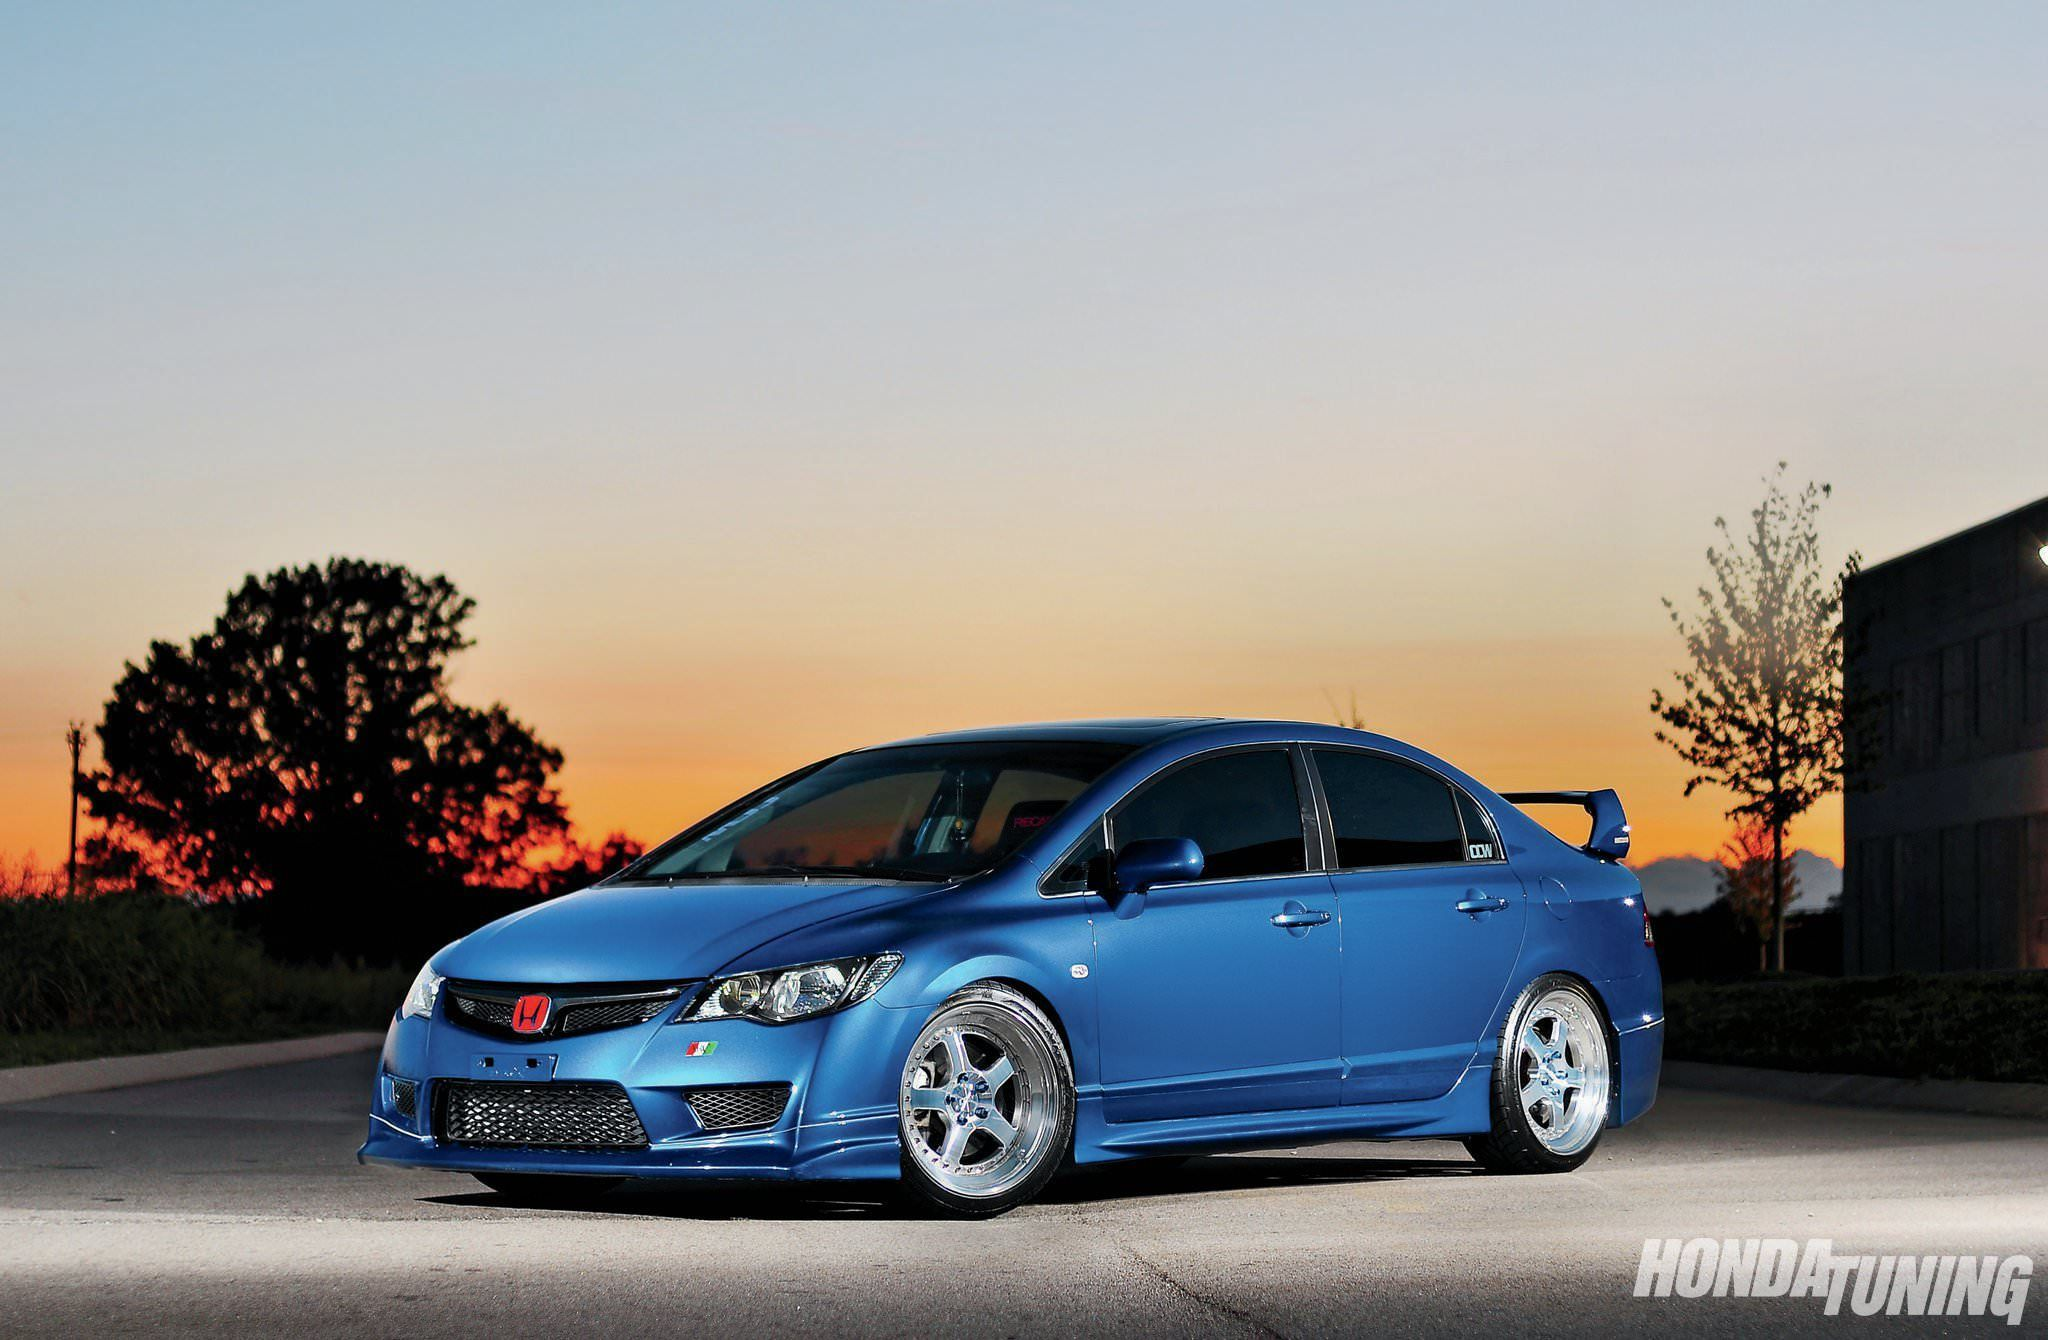 2008 Honda Civic Si JDM FD2 Conversion (Honda Tuning